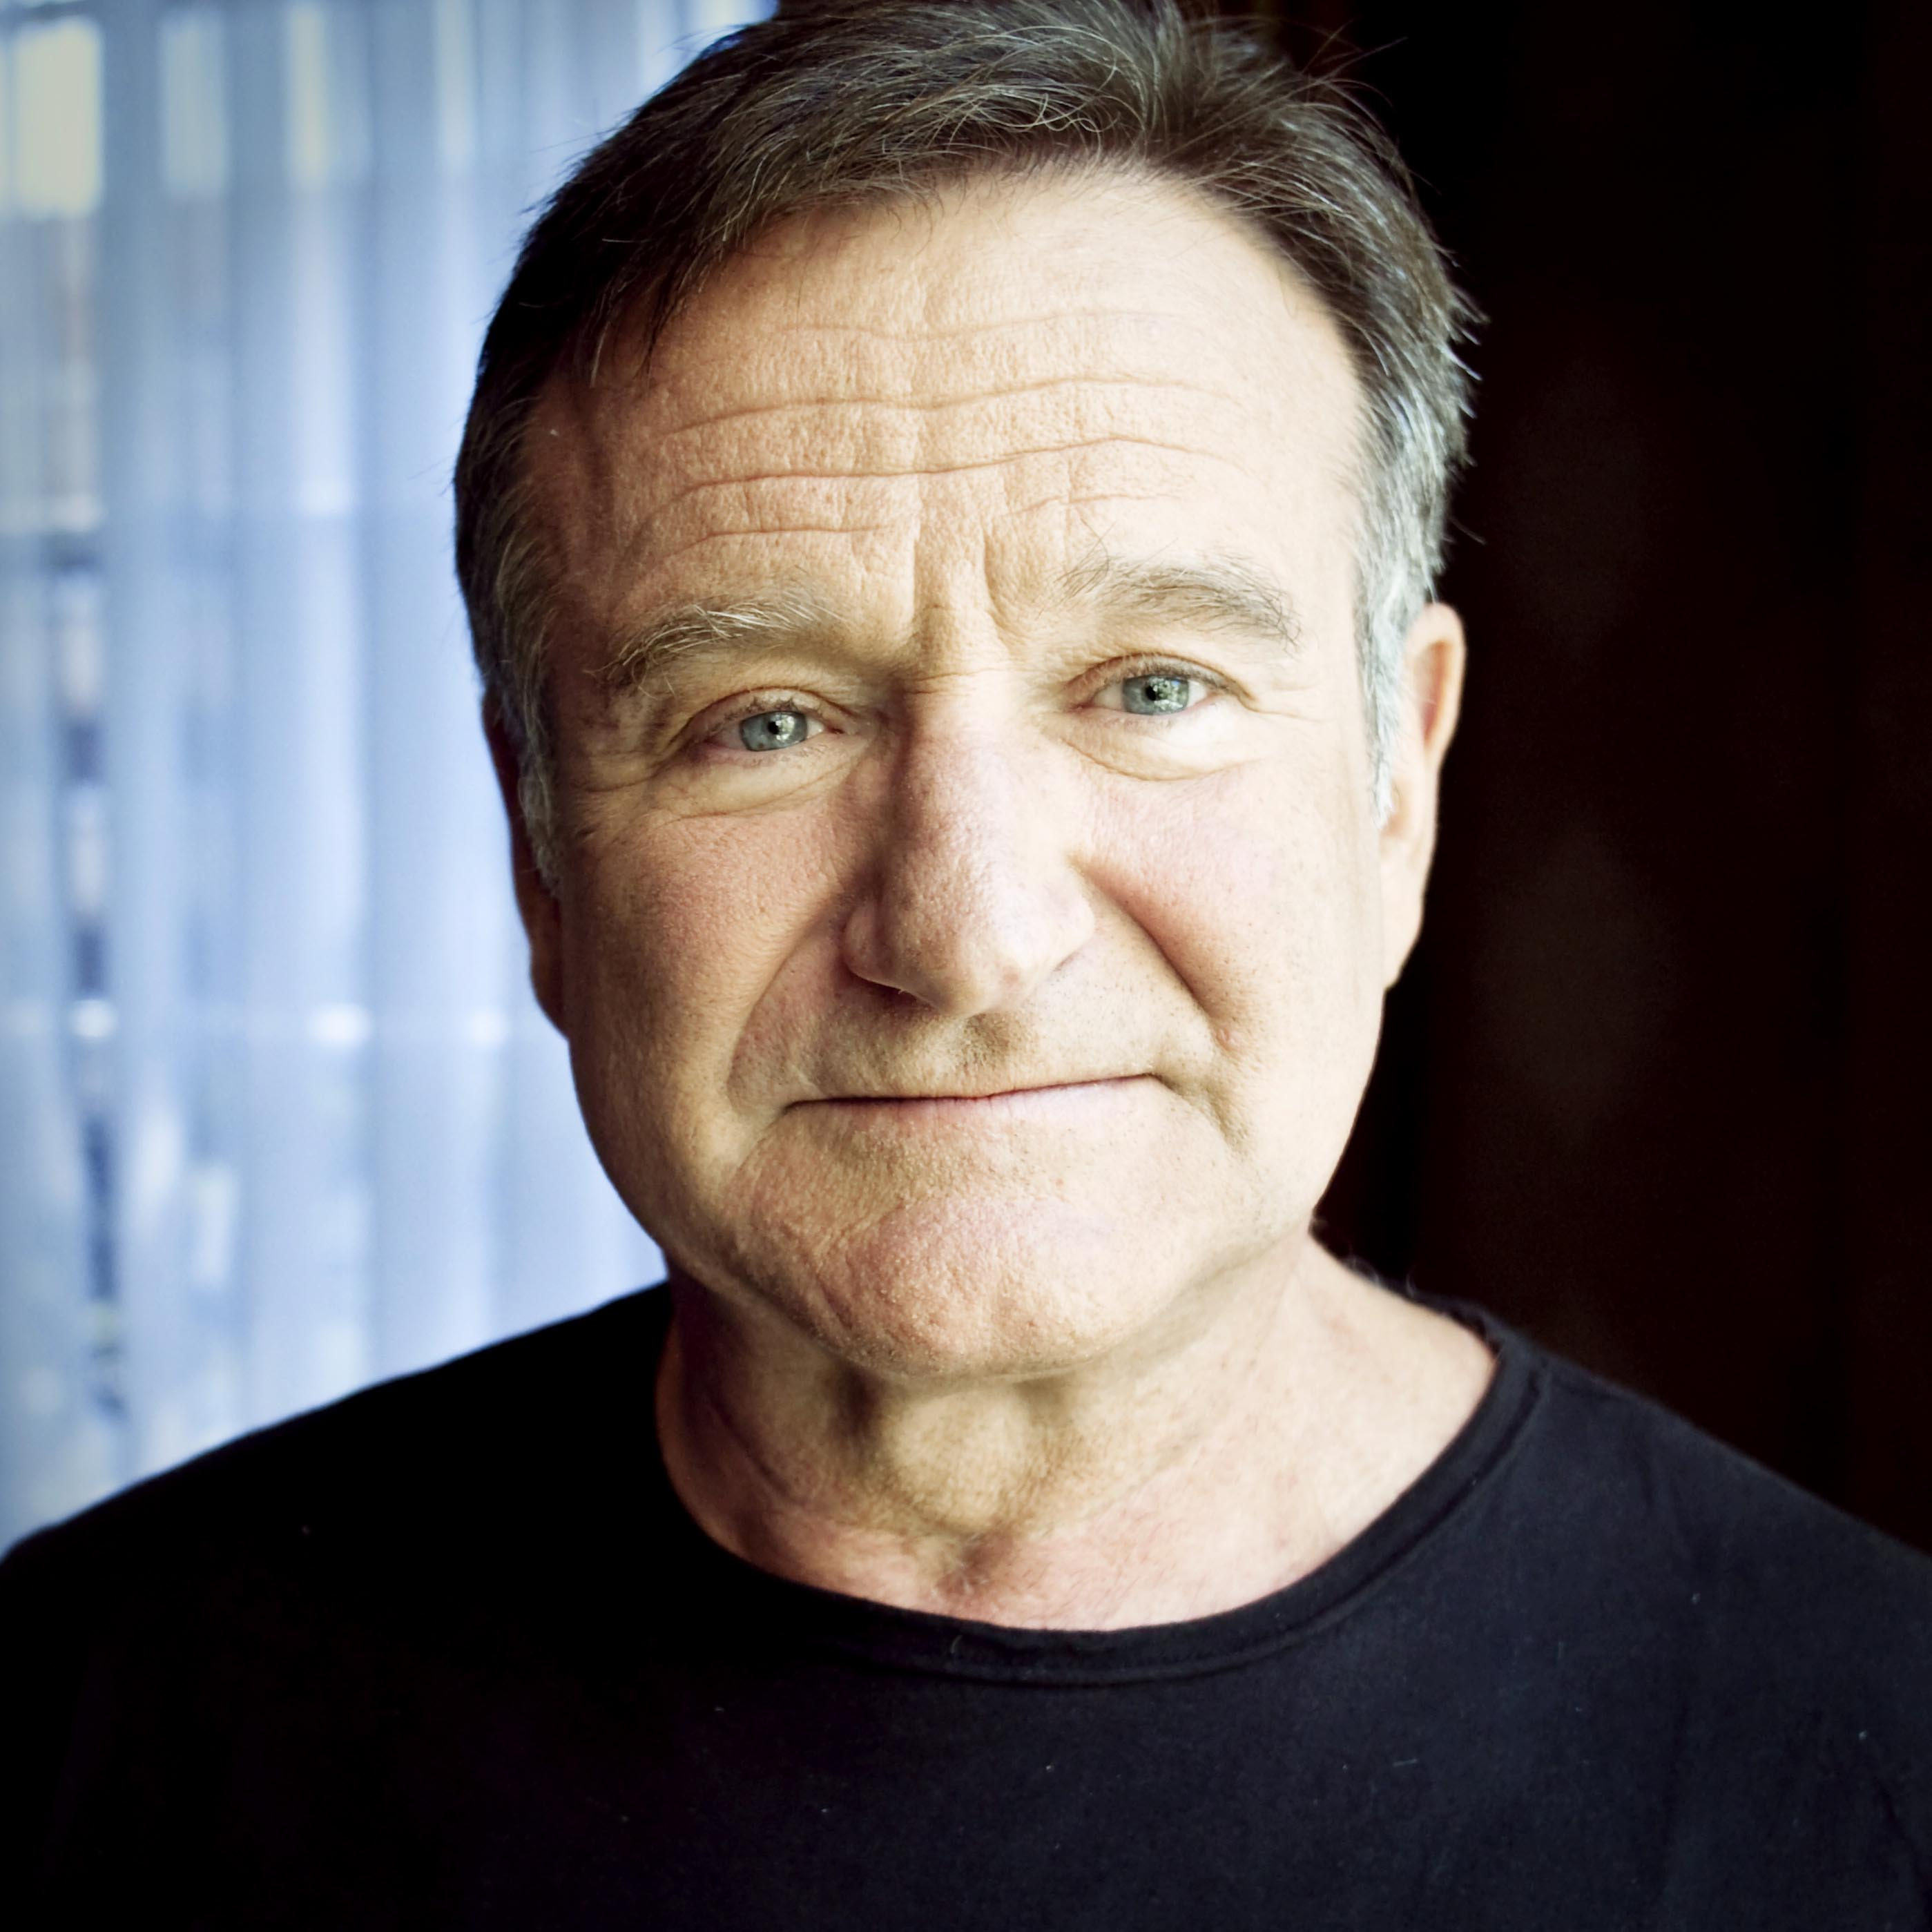 portrait of the American actor Robin Williams